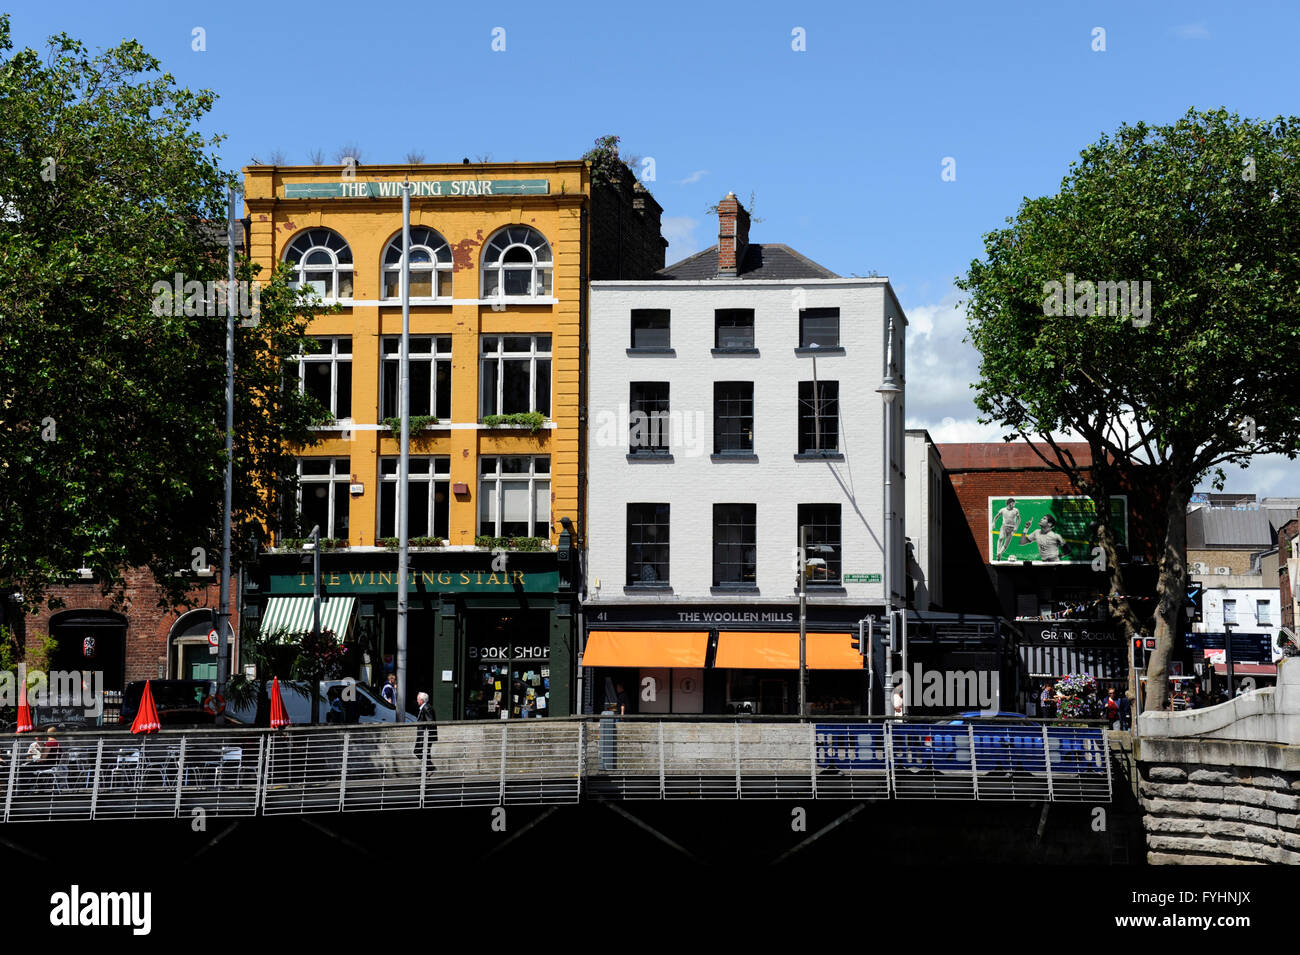 Liffey river,Ormond quay. lower, The Wining Stair book shop, Dublin, Ireland - Stock Image